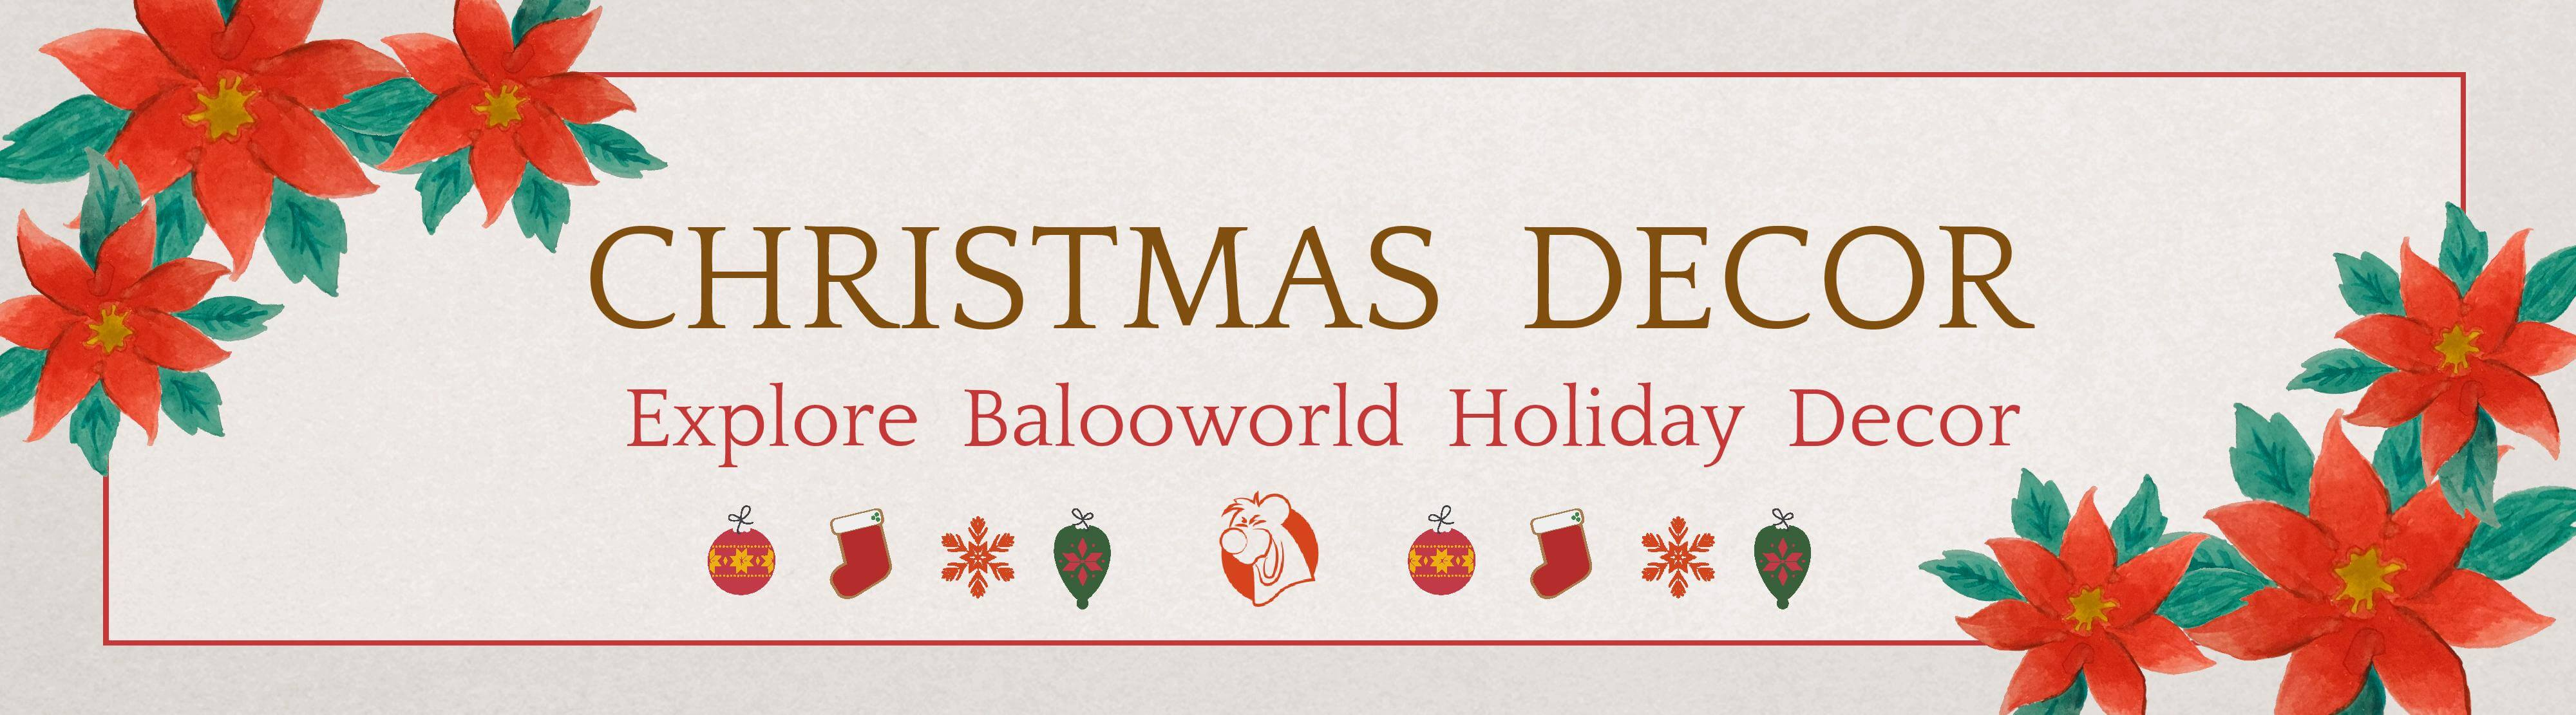 balooworld-ca-christmas-decor-2020-cmp